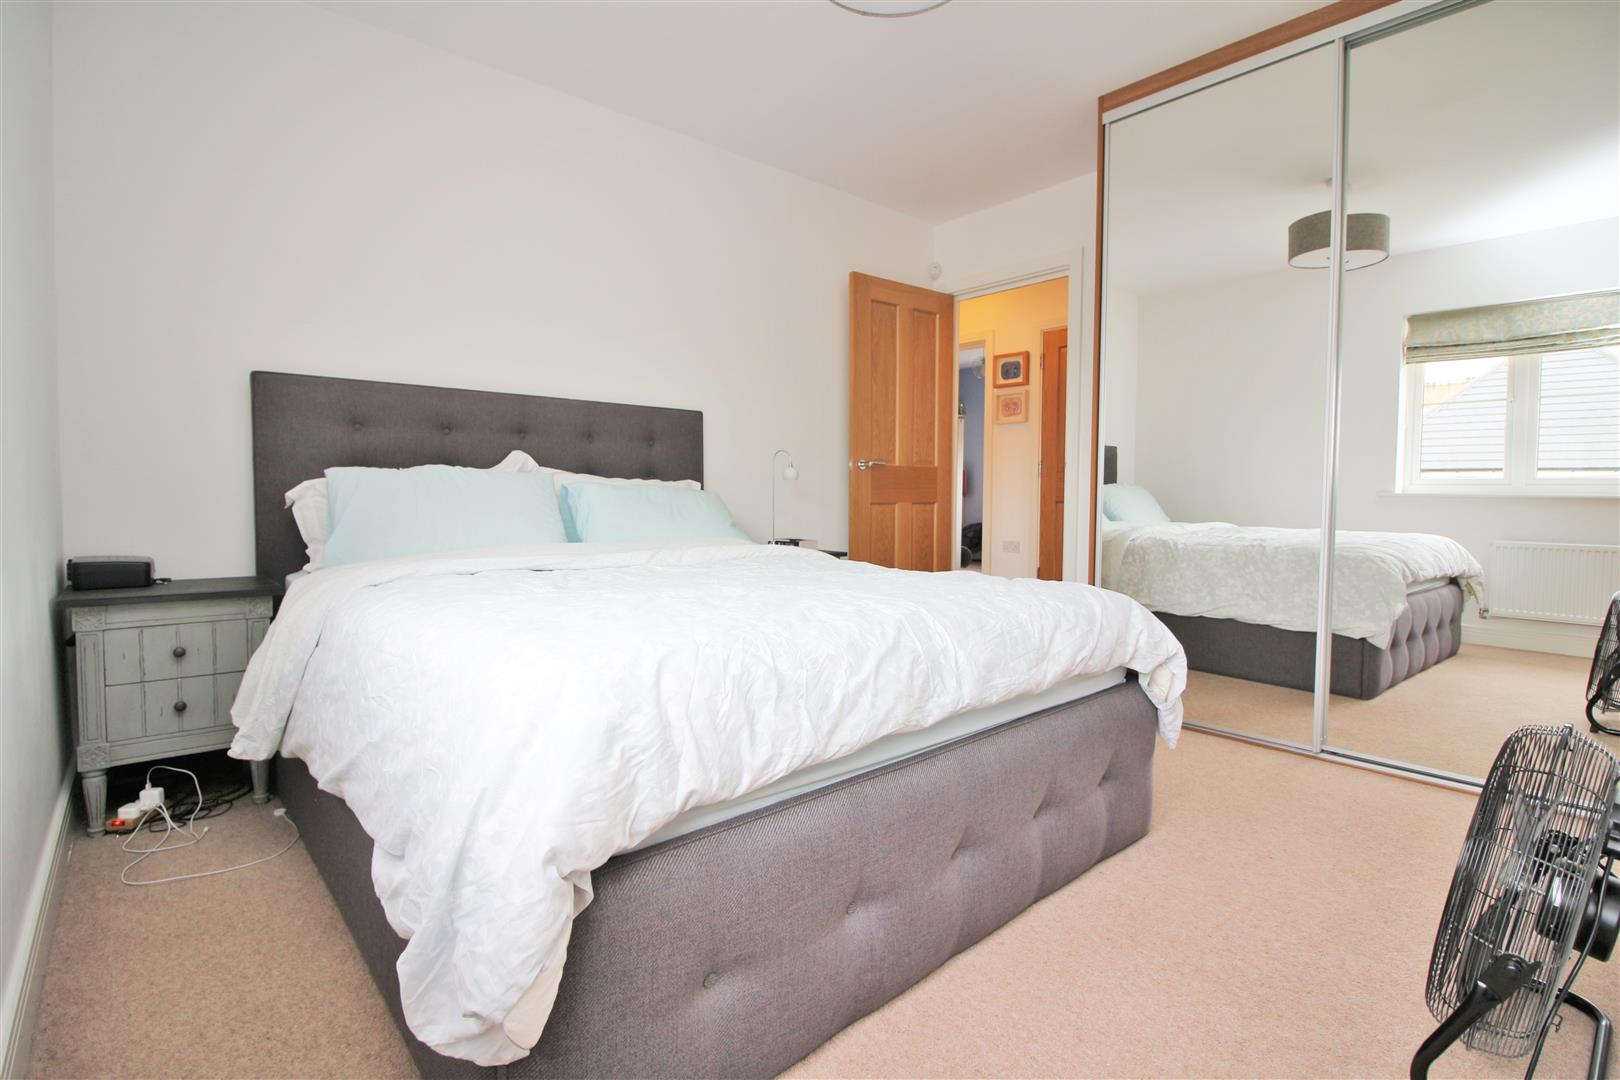 4 bed to rent in Leavesden - (Property Image 13)